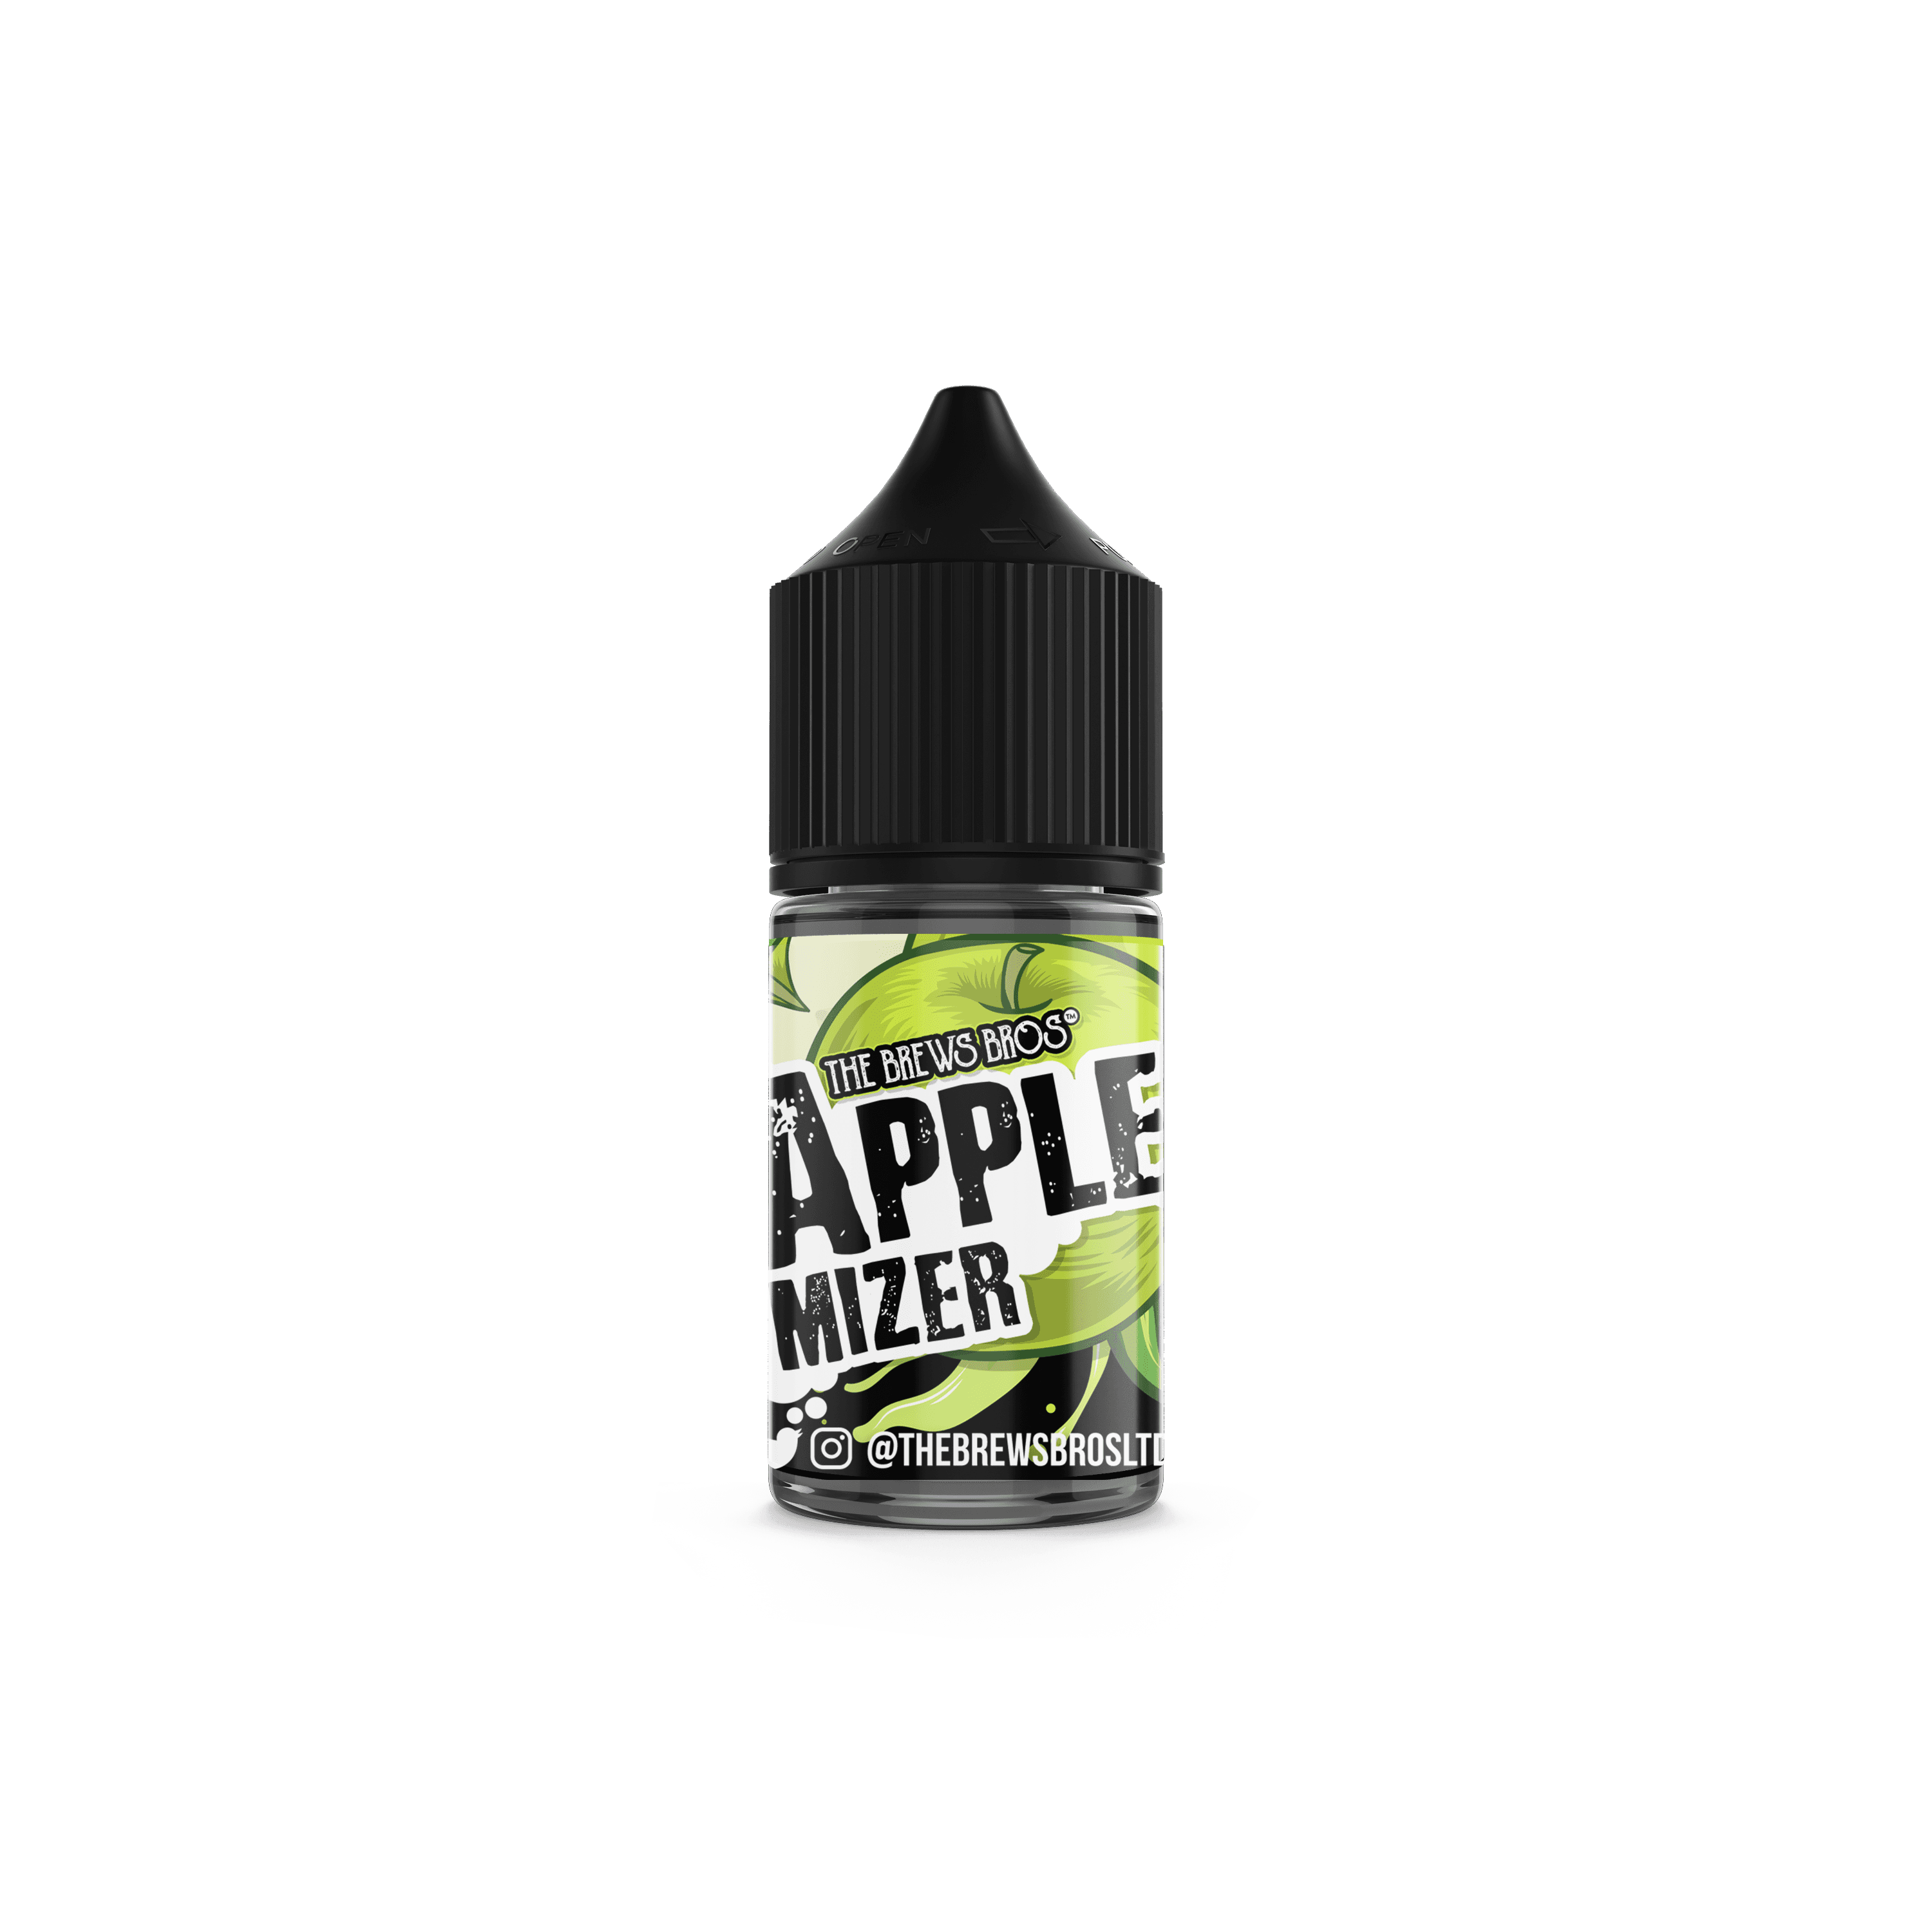 Applemizer Flavour Concentrate by Brews Bros